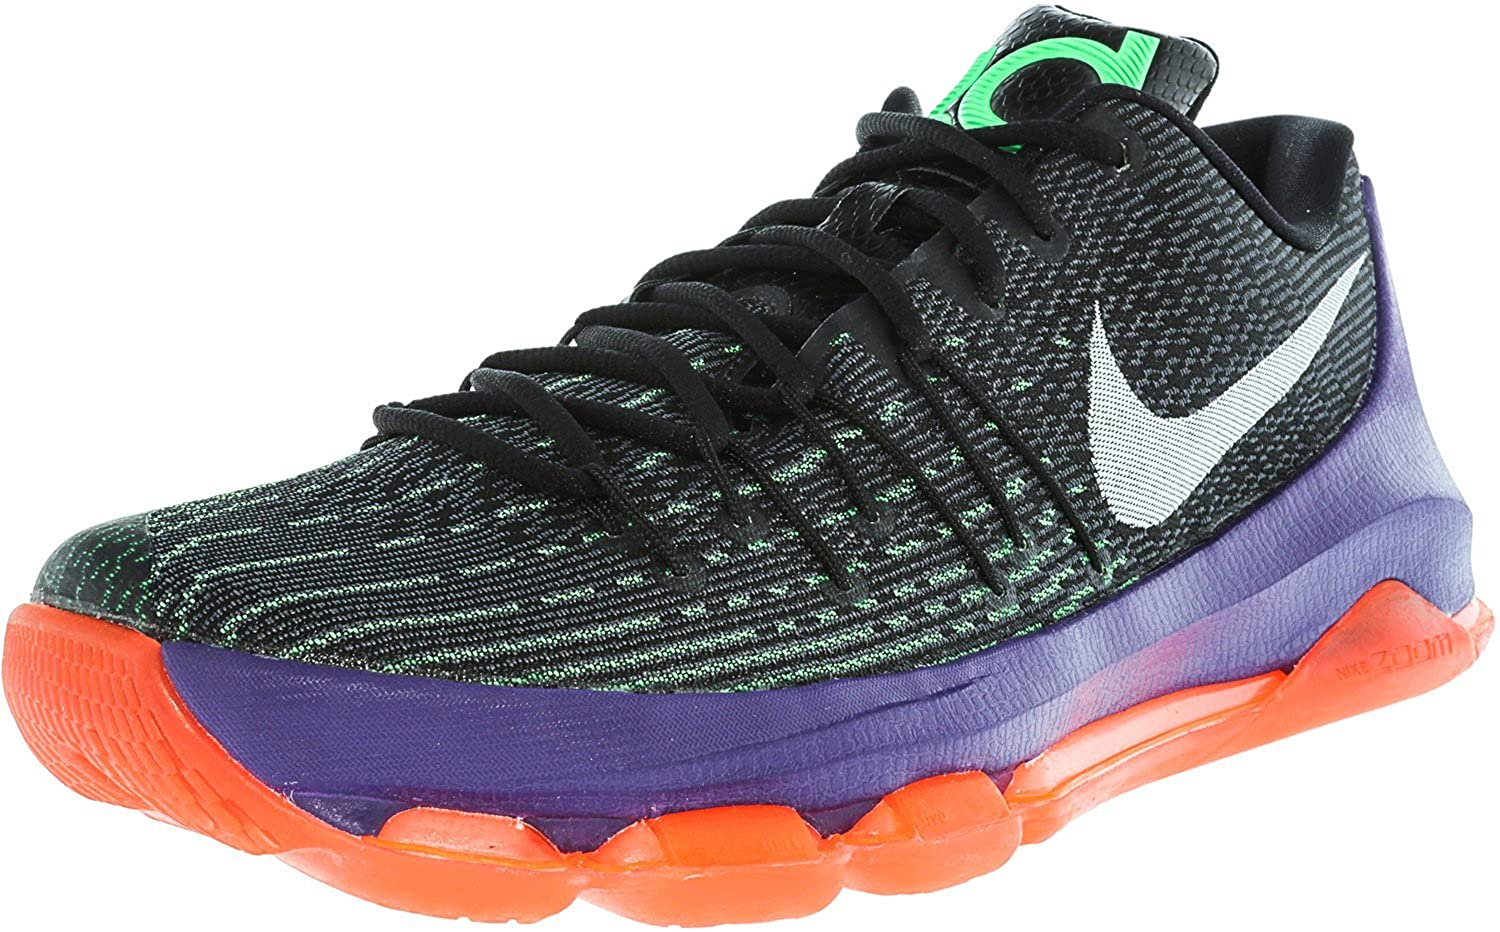 Nike Mens KD 8, BlackWhite Green Shock Hyper Orange, 10 M